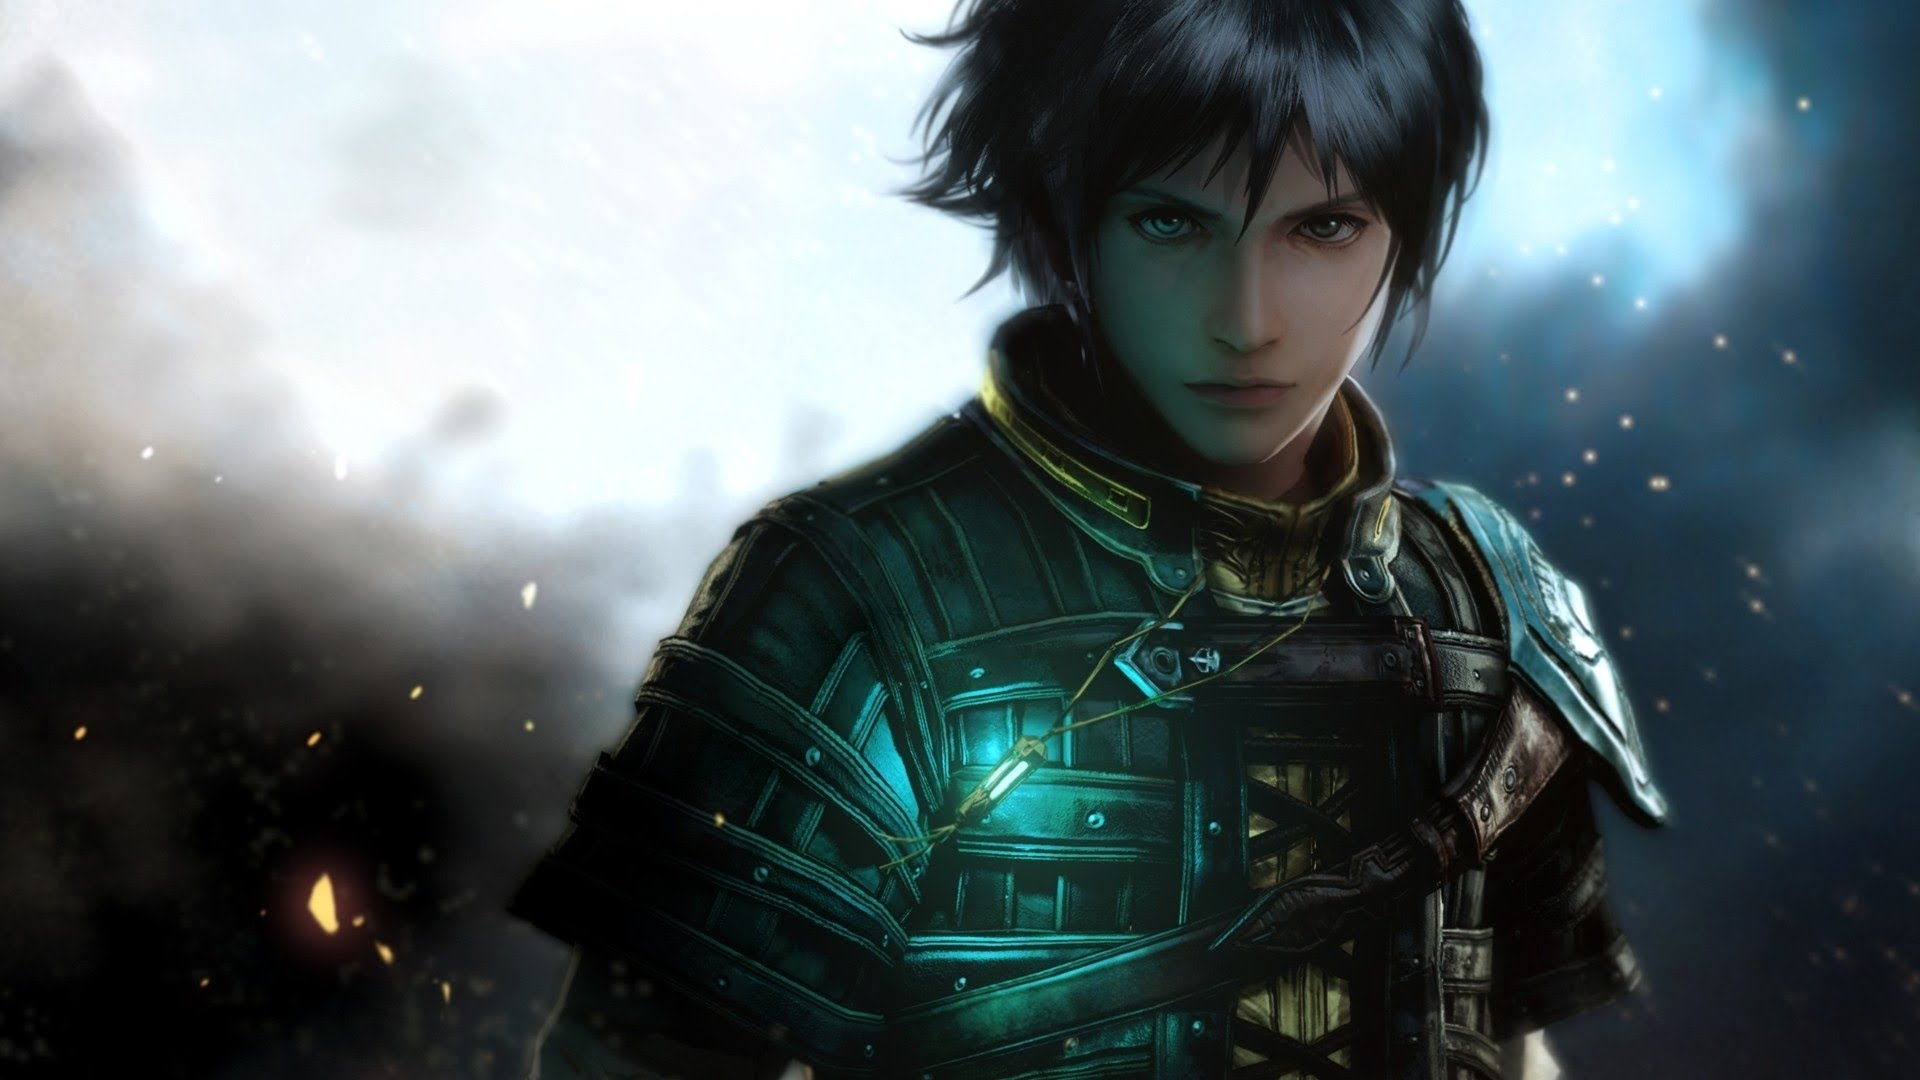 Ninja Fantasy Girl Wallpaper Ps4 Exclusive The Last Remnant Remastered Gets First Live